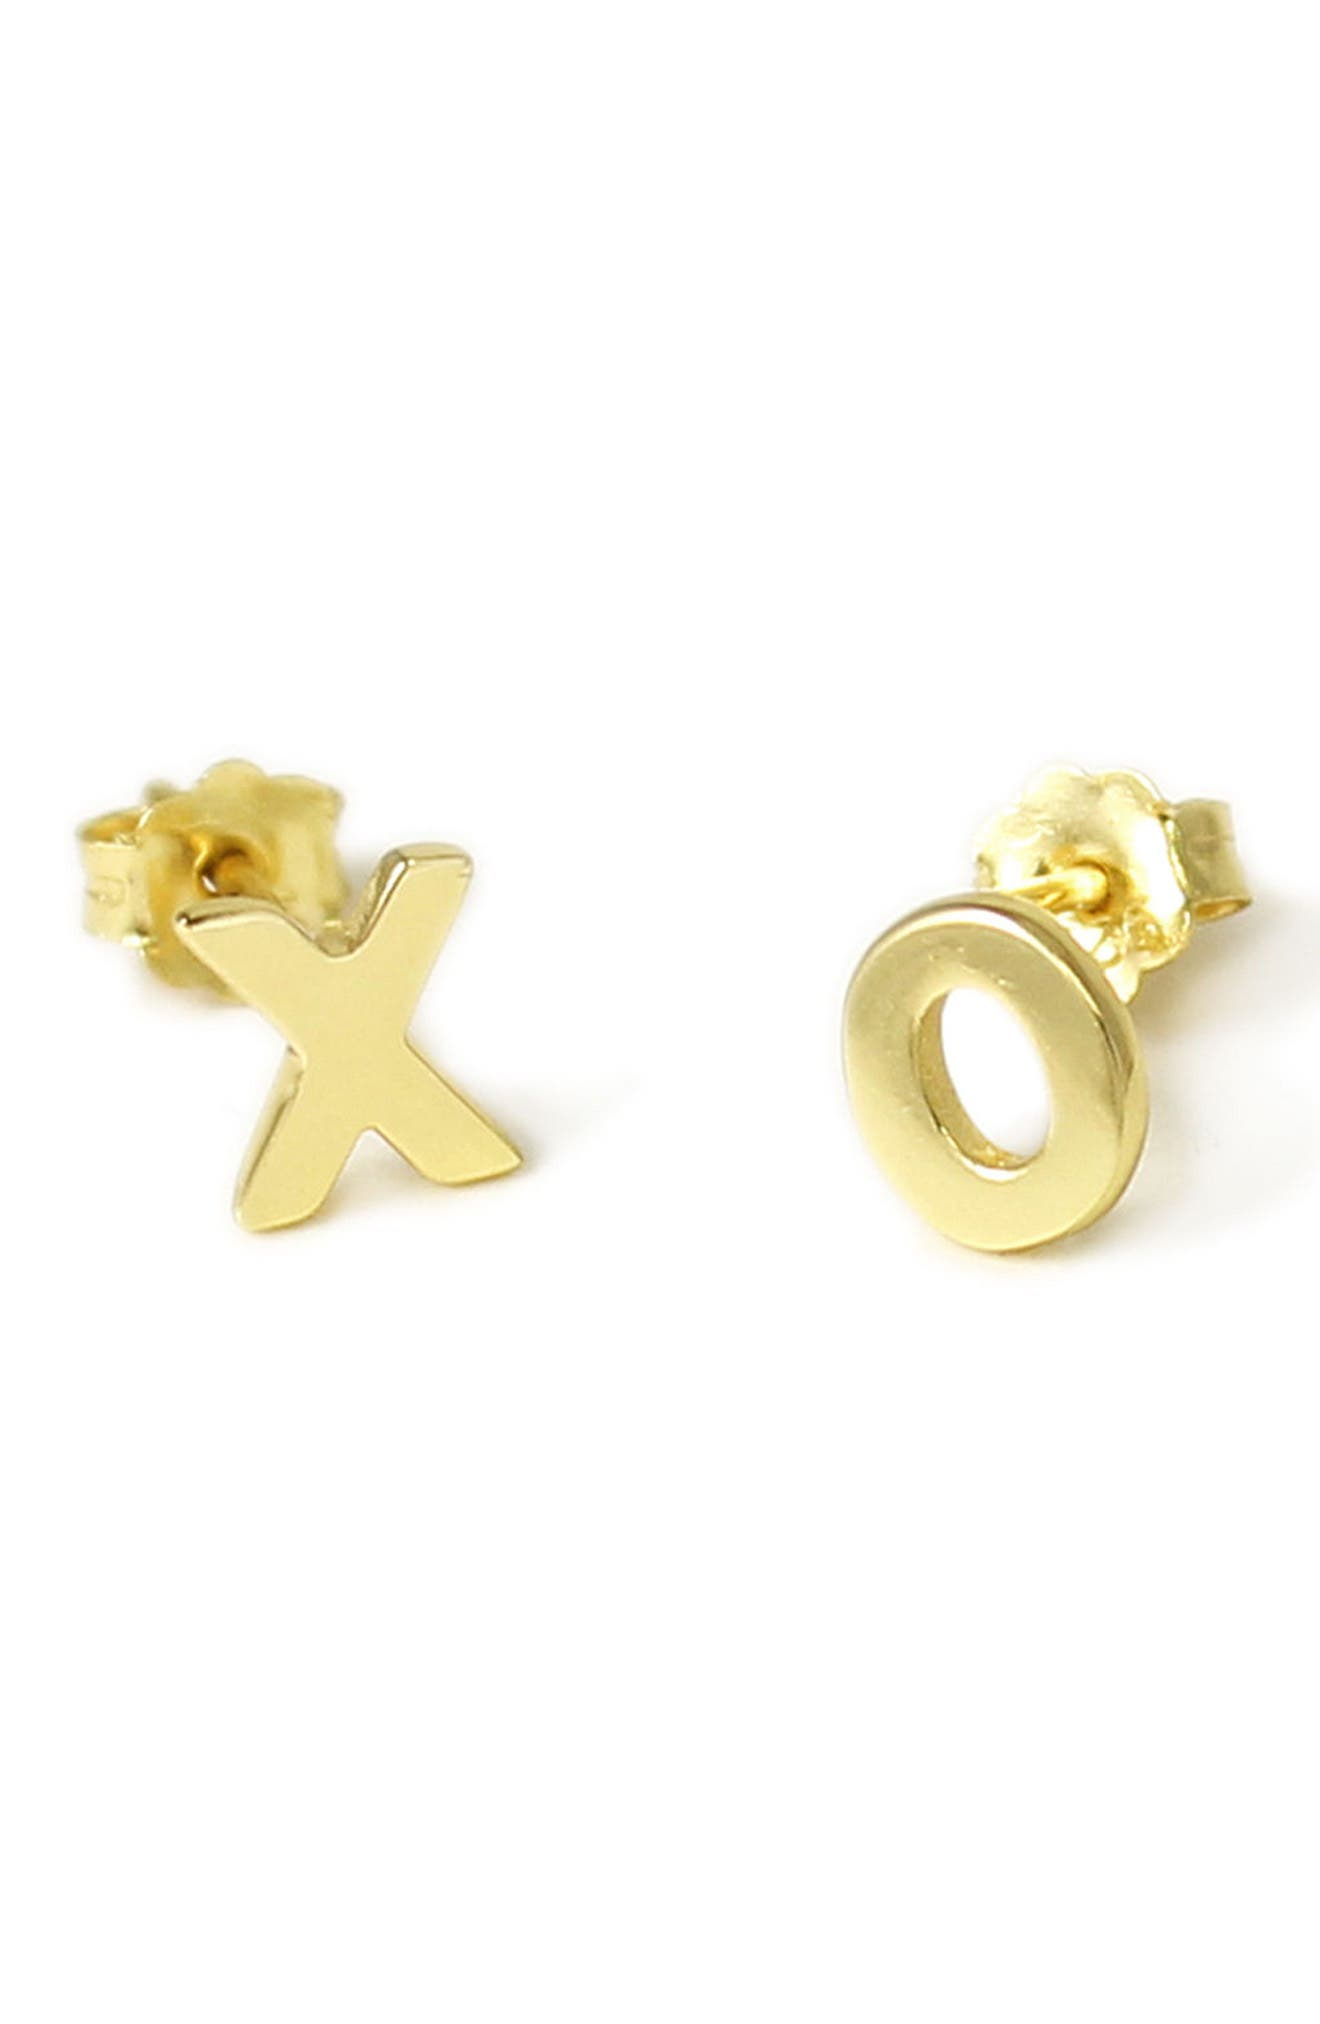 Kris Nations XO Stud Earrings